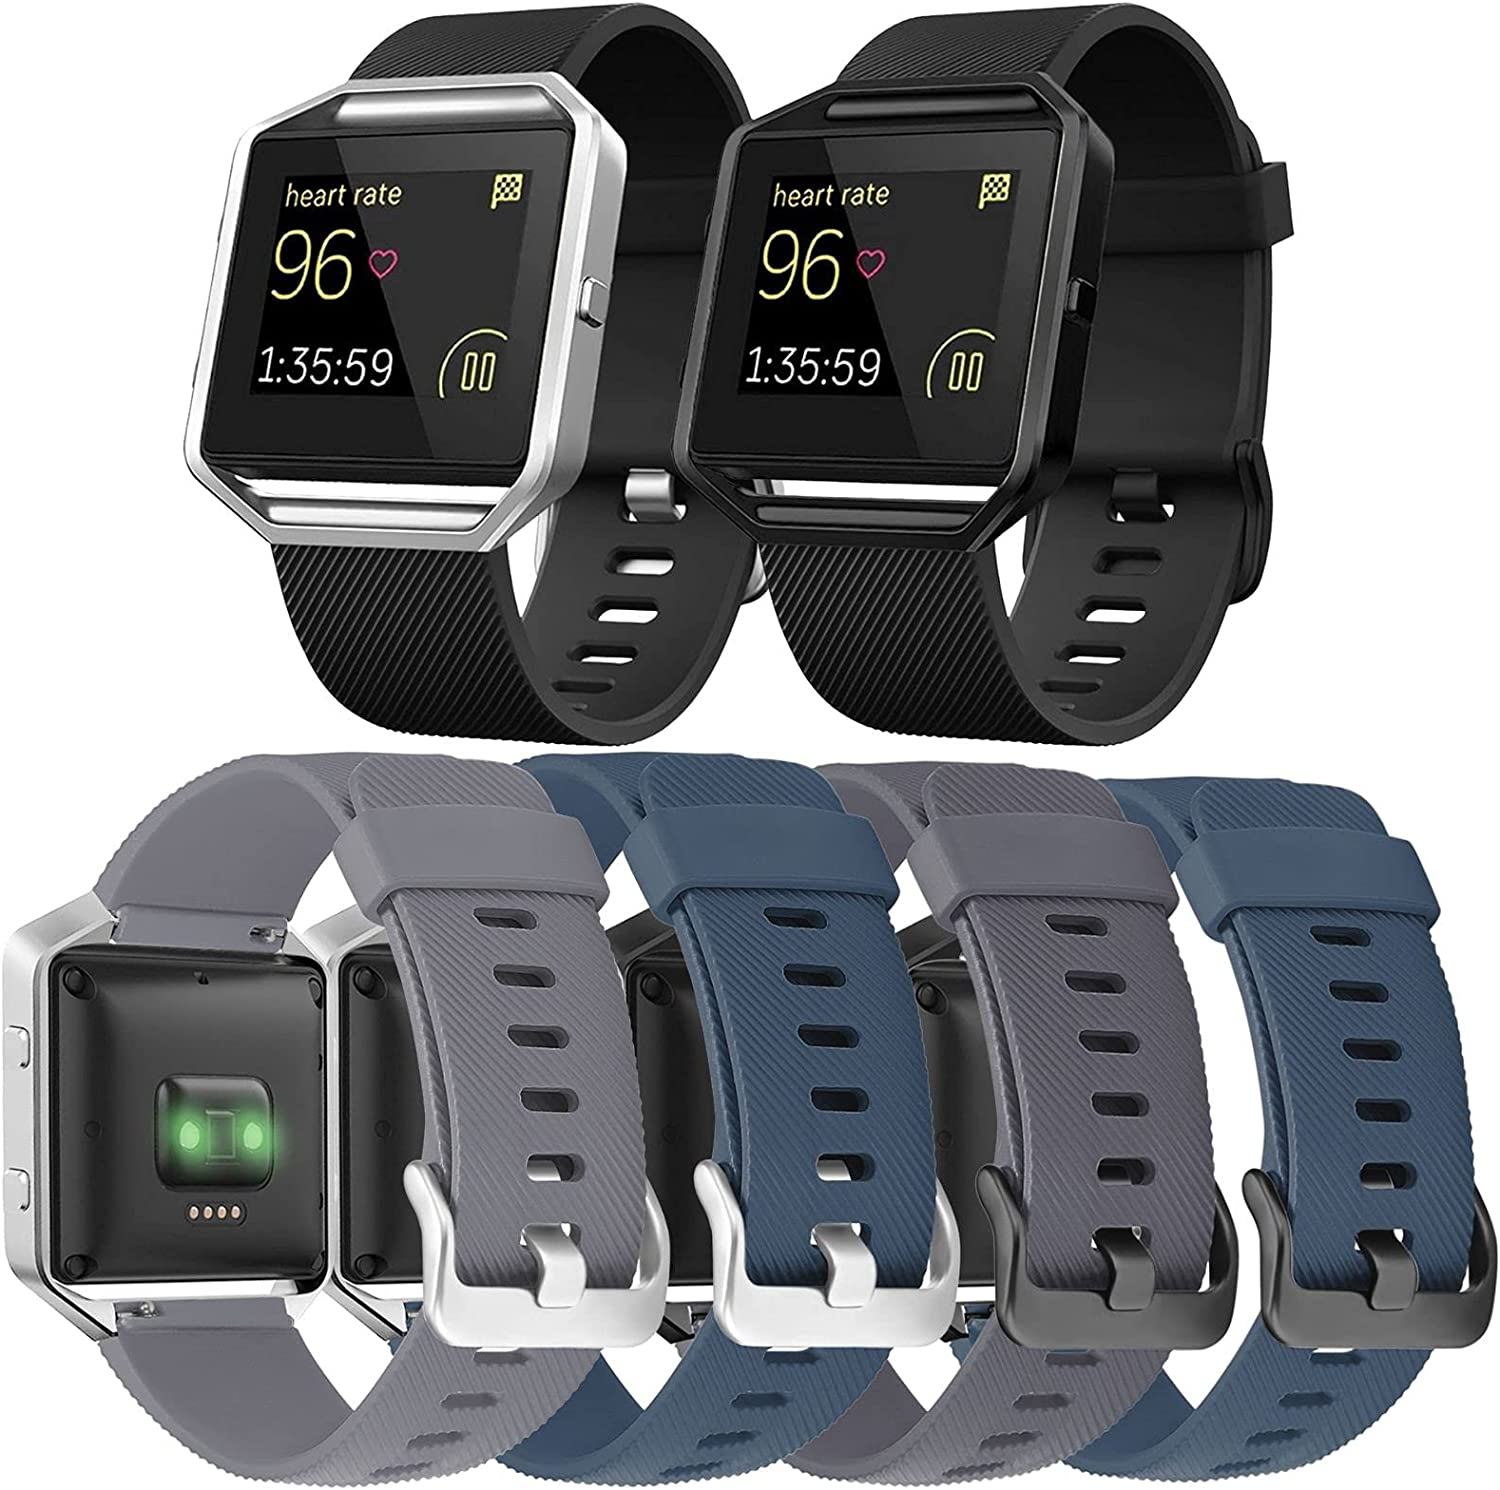 ESeekGo Compatible with Fitbit Blaze Bands, 6 Pack Silicone Band with 2 Pcs Metal Frame Compatible with Fitbit Blaze Sport Fitness Accessory Replacement Wristband for Men Women